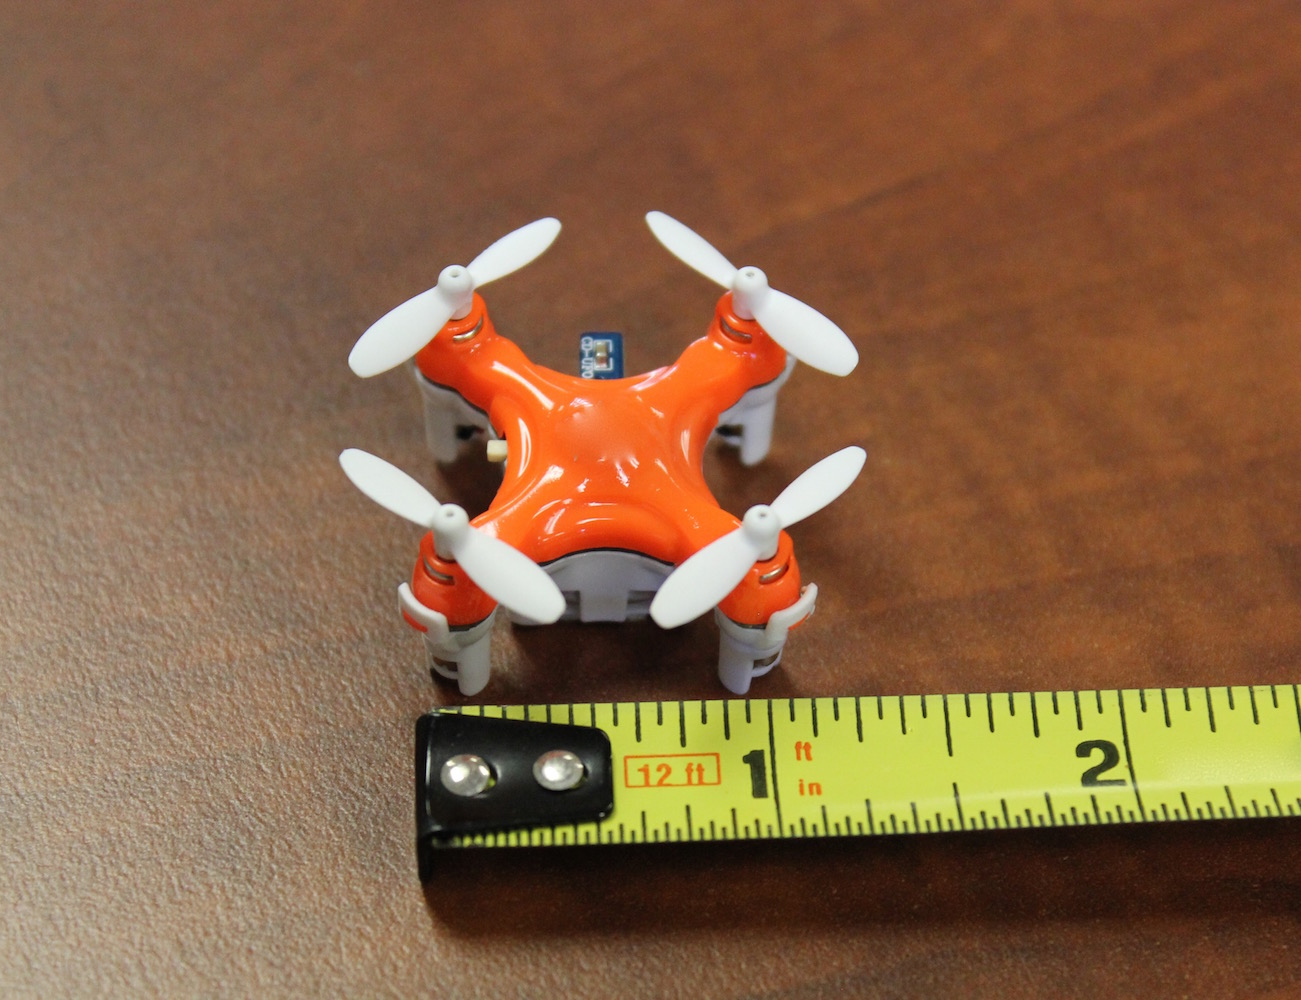 Aerius The New World S Smallest Quadcopter 187 Gadget Flow